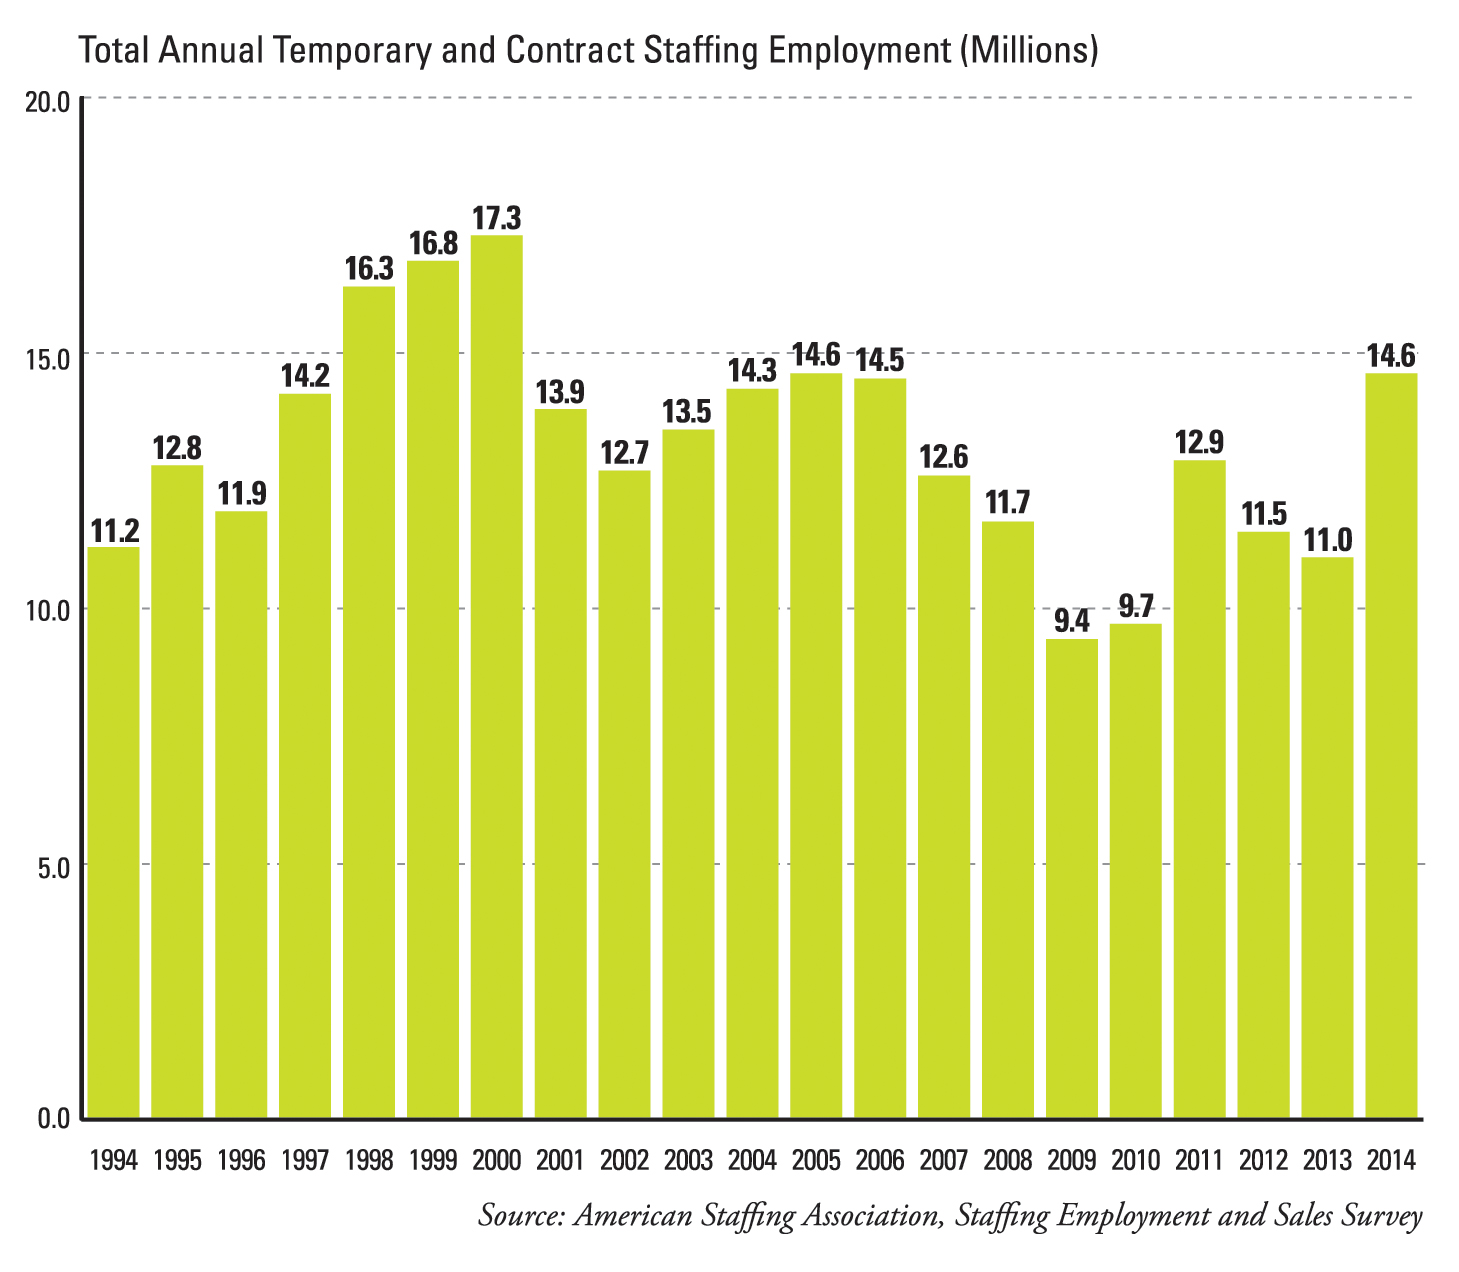 Annual Sales Totals for the Staffing and Recruiting industry